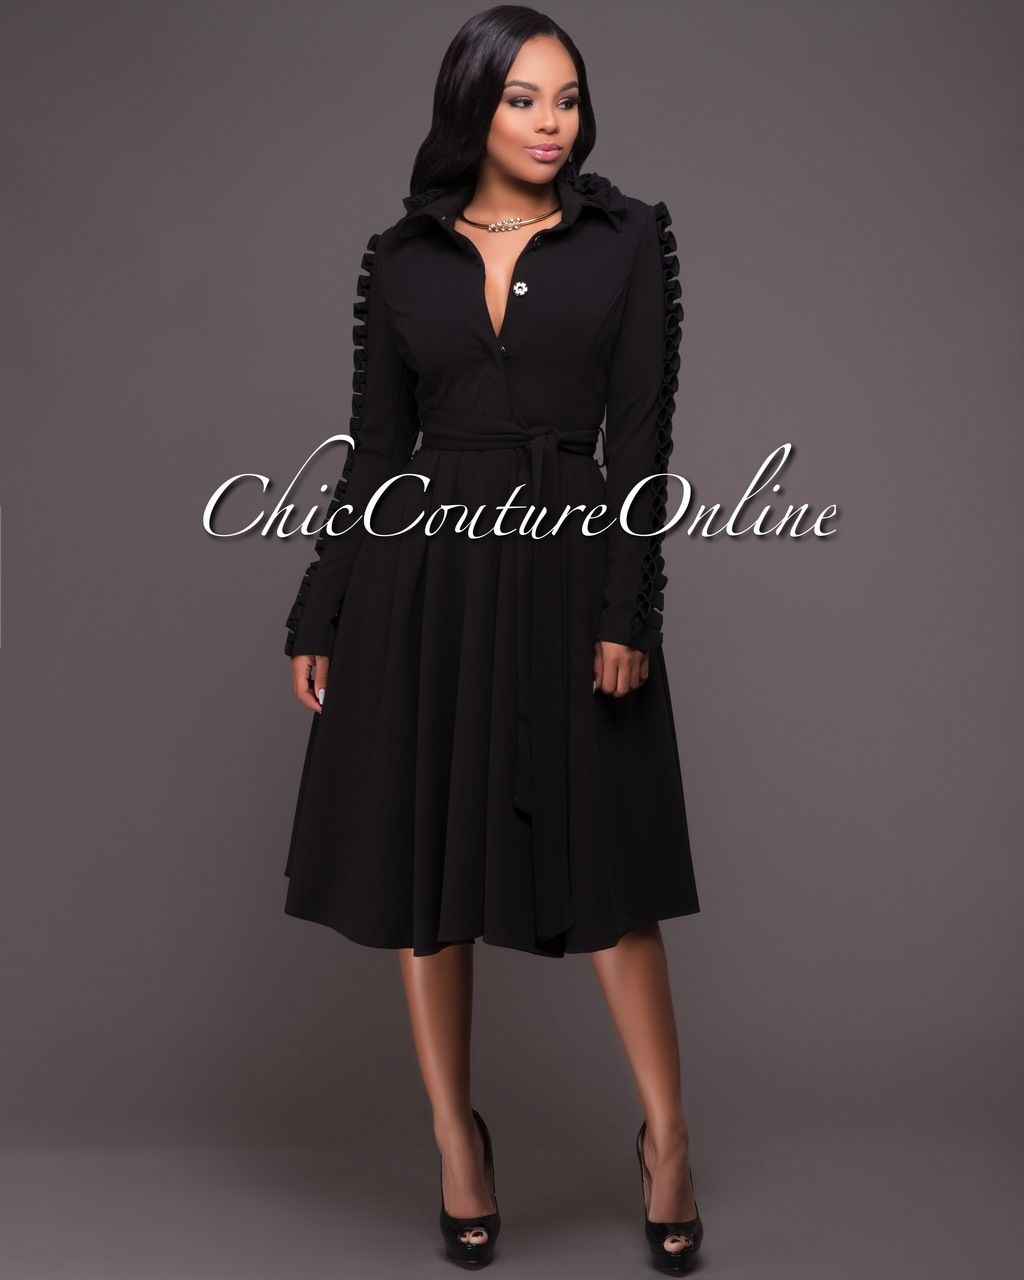 Stylish Clothes Pin By Chic Couture Online On Clothing Chic Couture Online